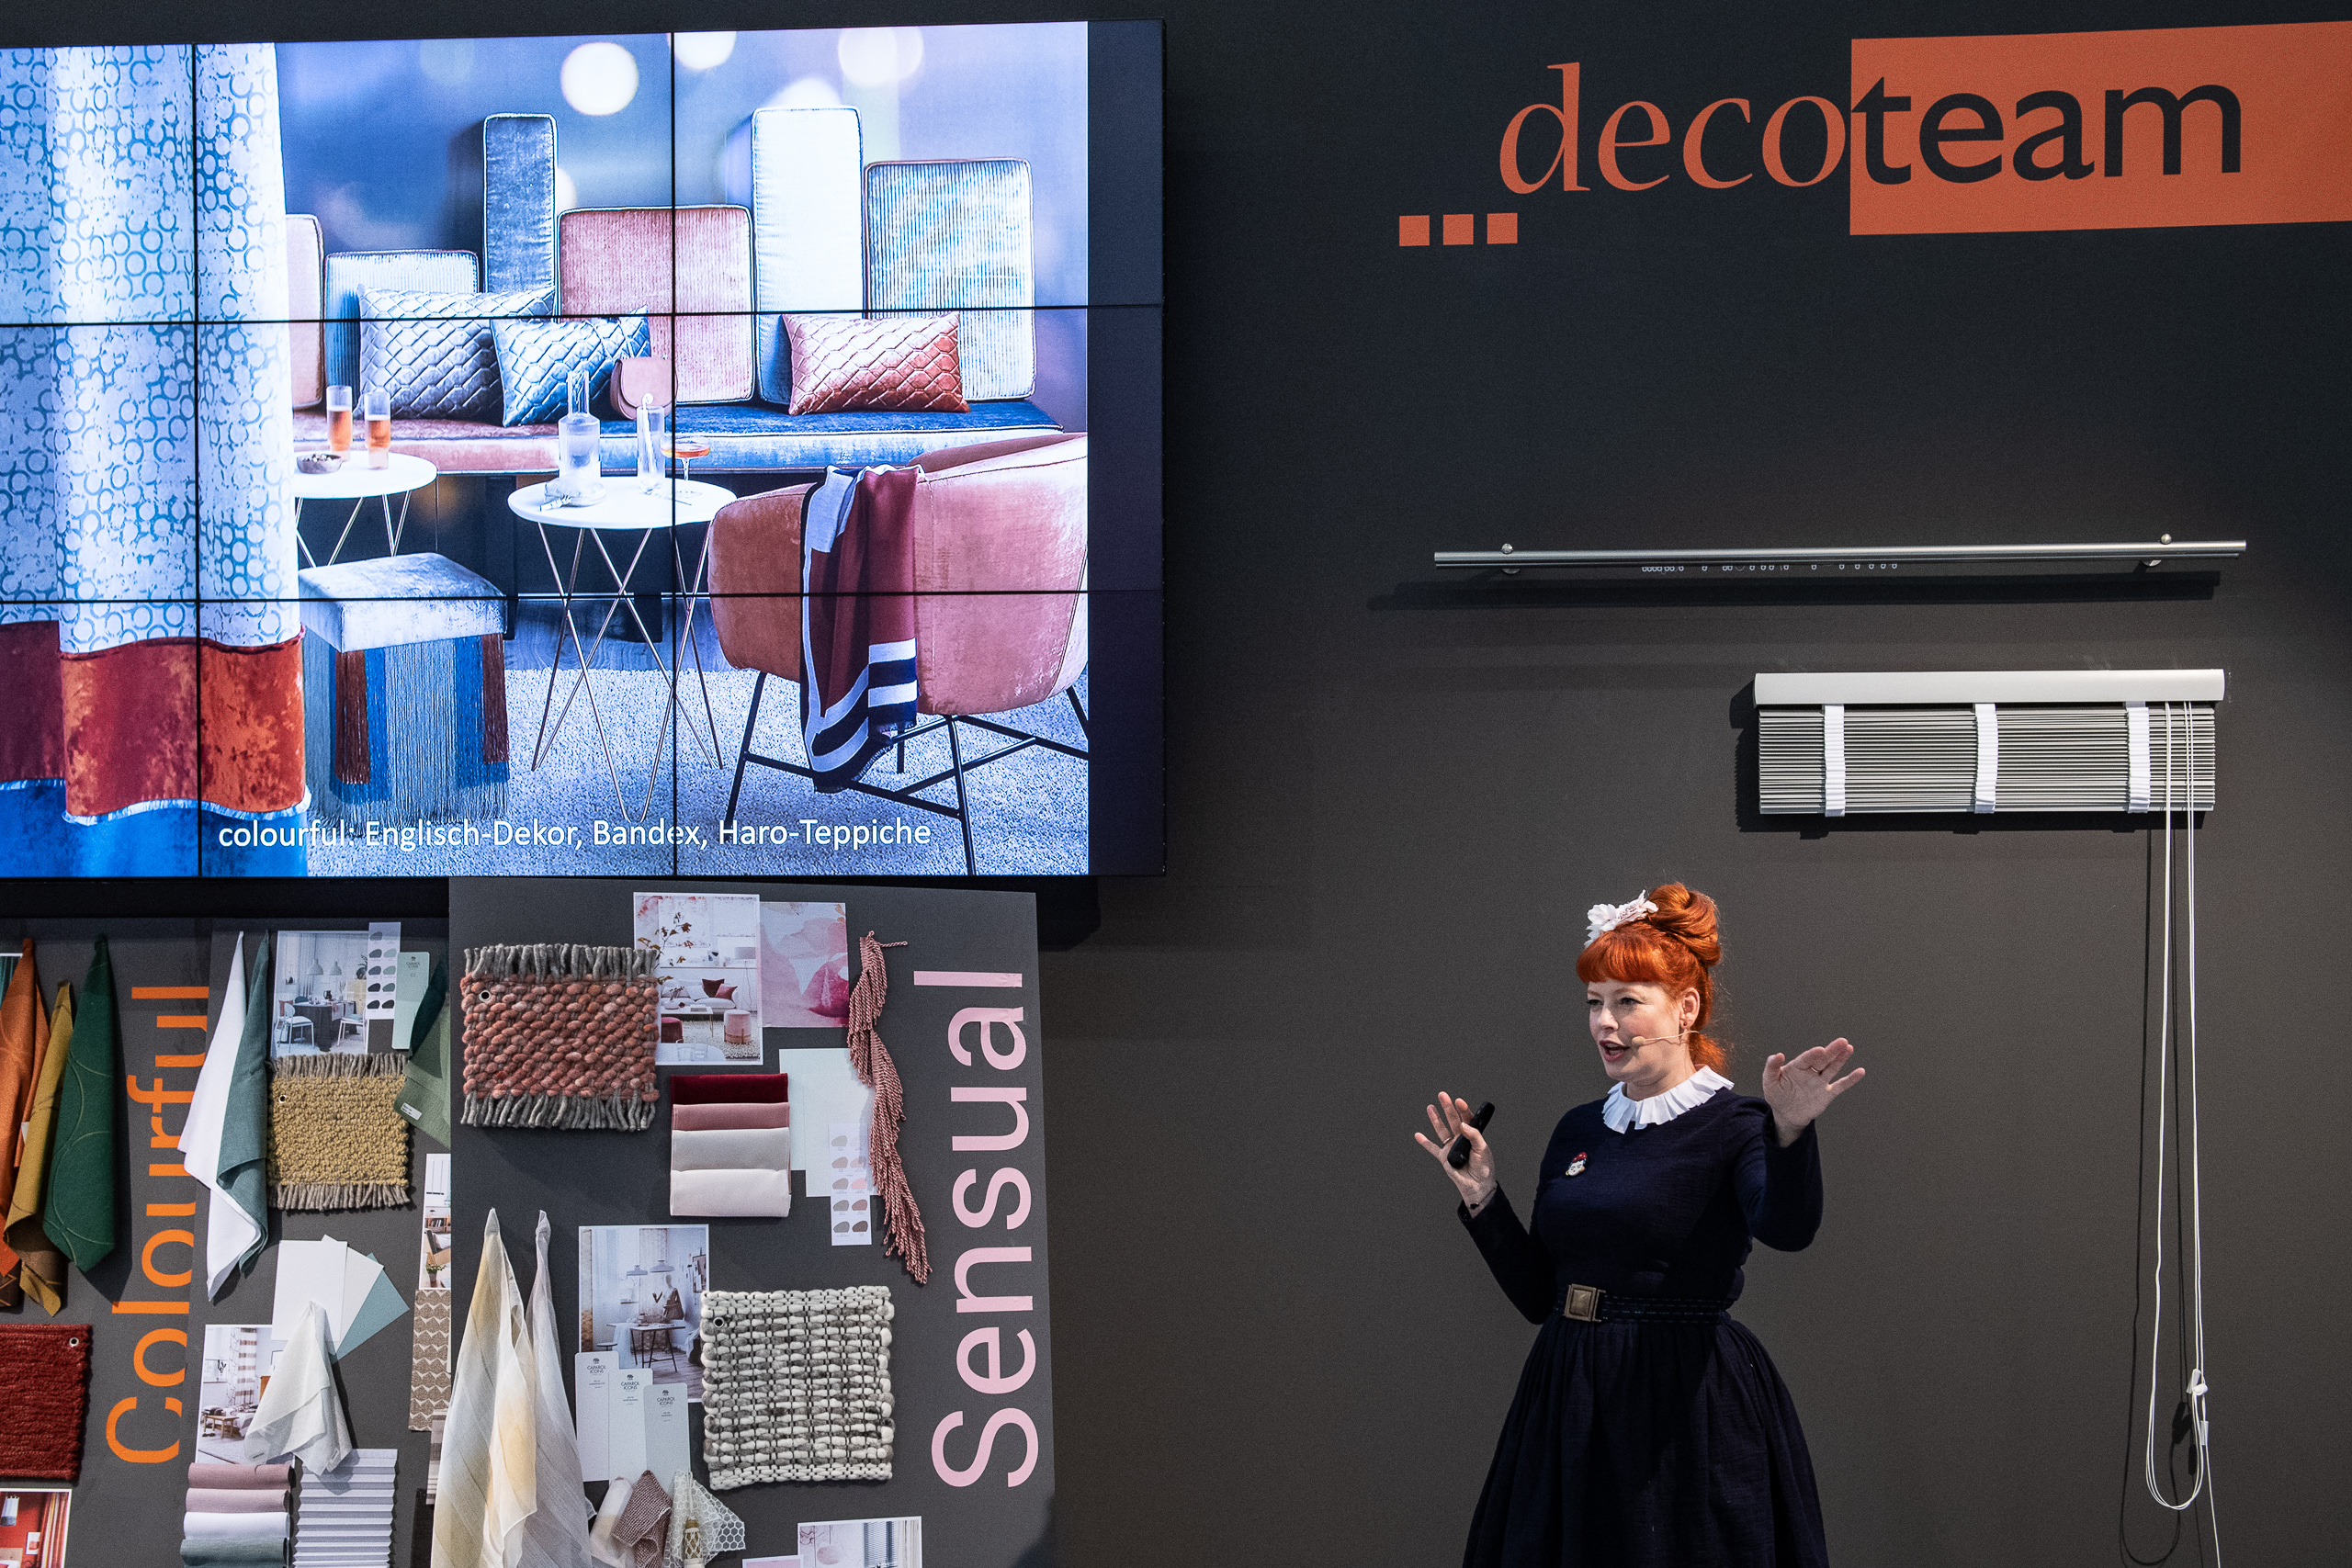 Heimtextil 2020 Deco Team /  Enie van de Meiklokjes at the decoteam booth